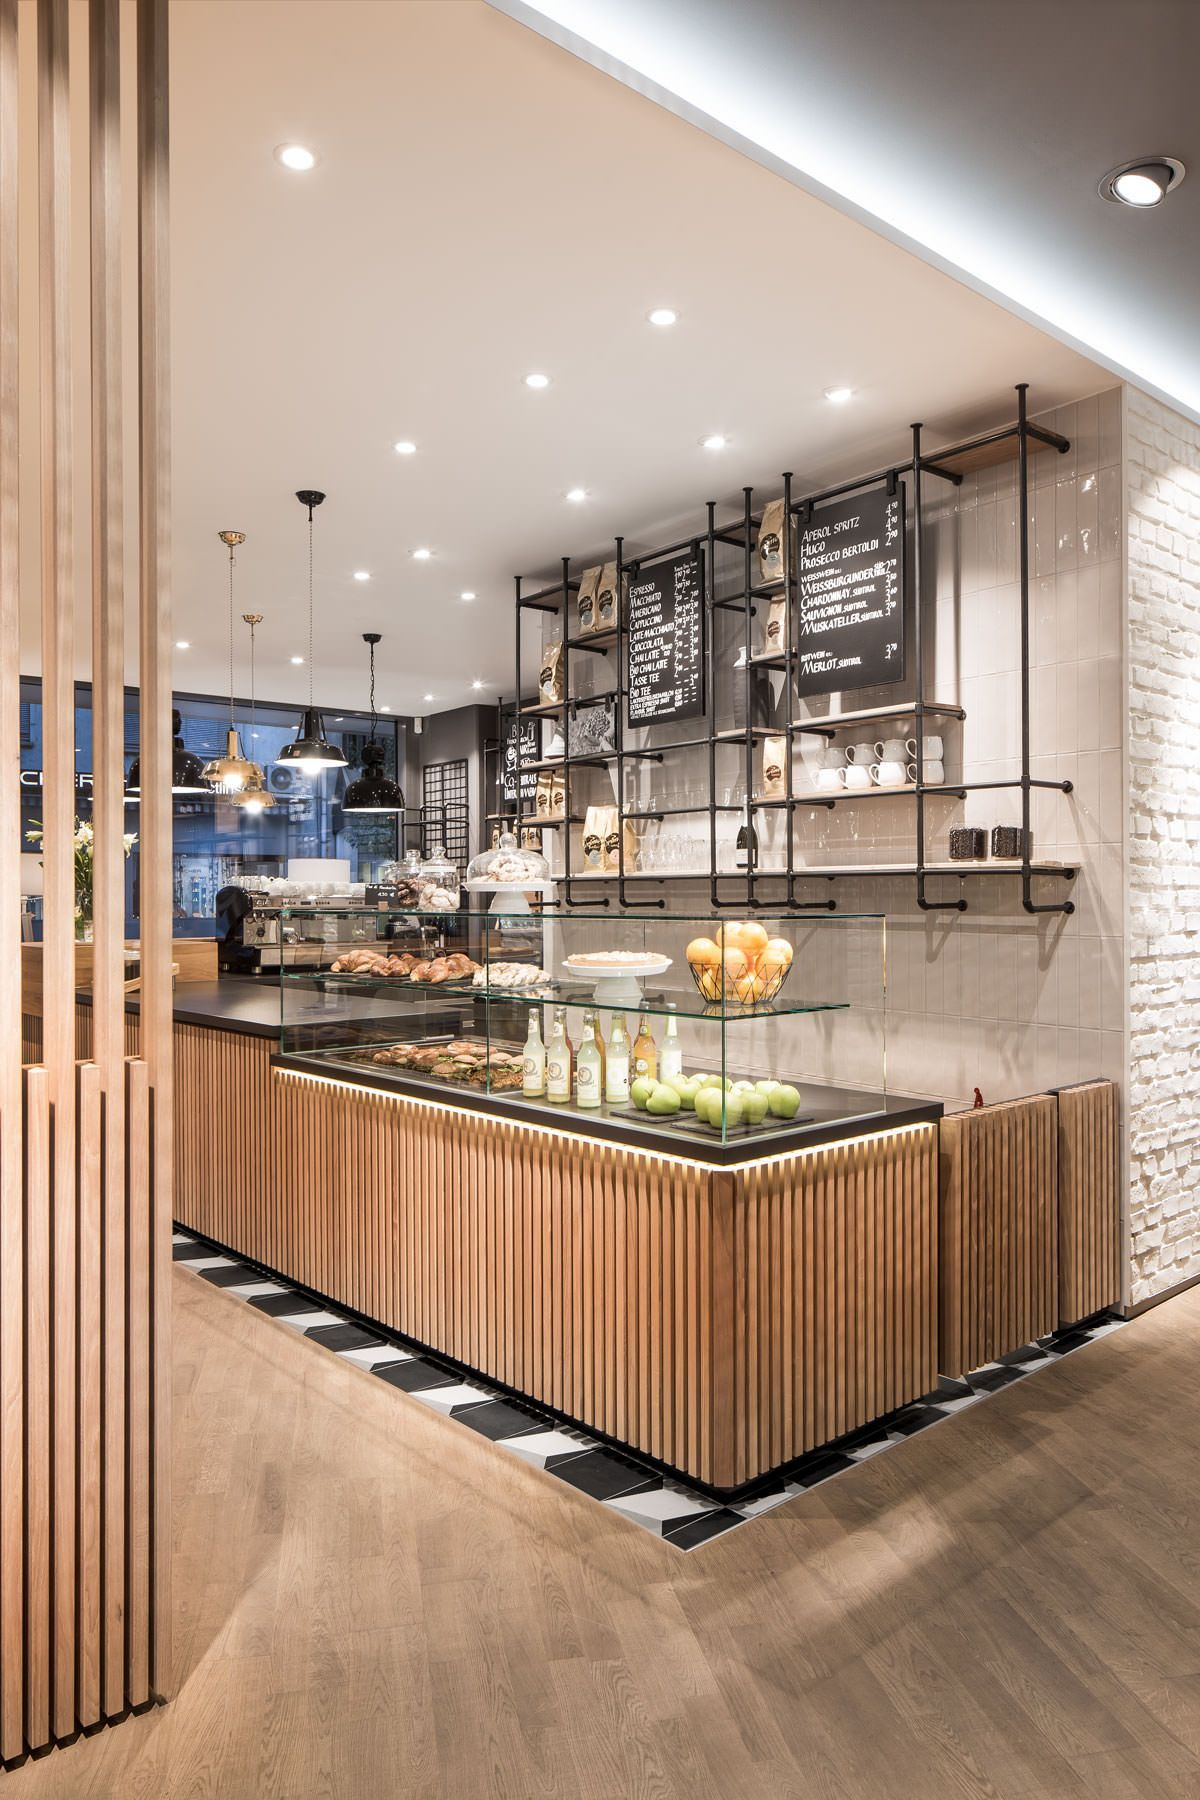 Restaurant, Architecture, Primo Cafe Bar T Bingen By Dia Dittel